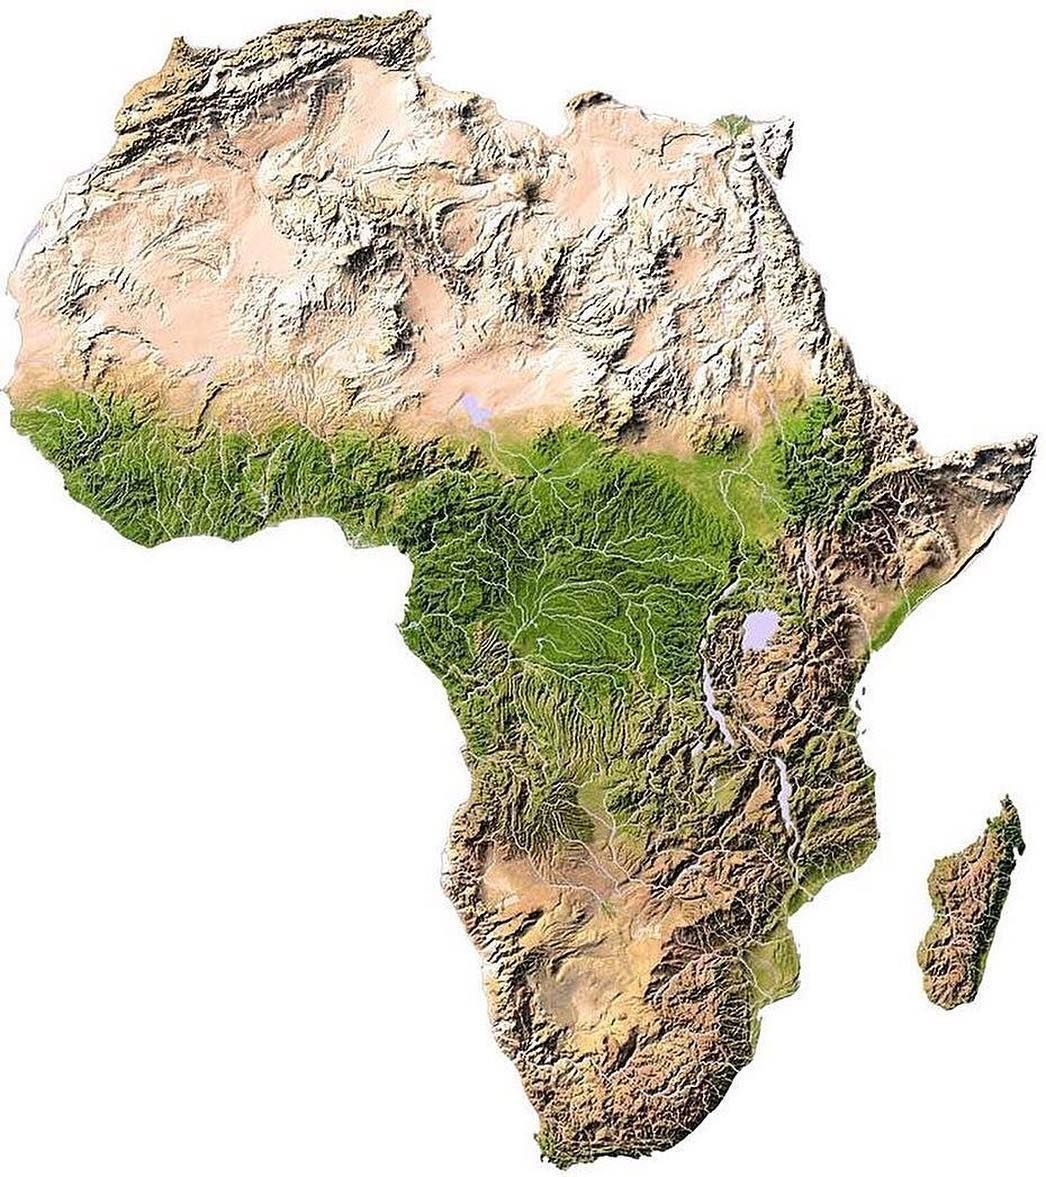 Africa Topographic Map MapScaping on Twitter: